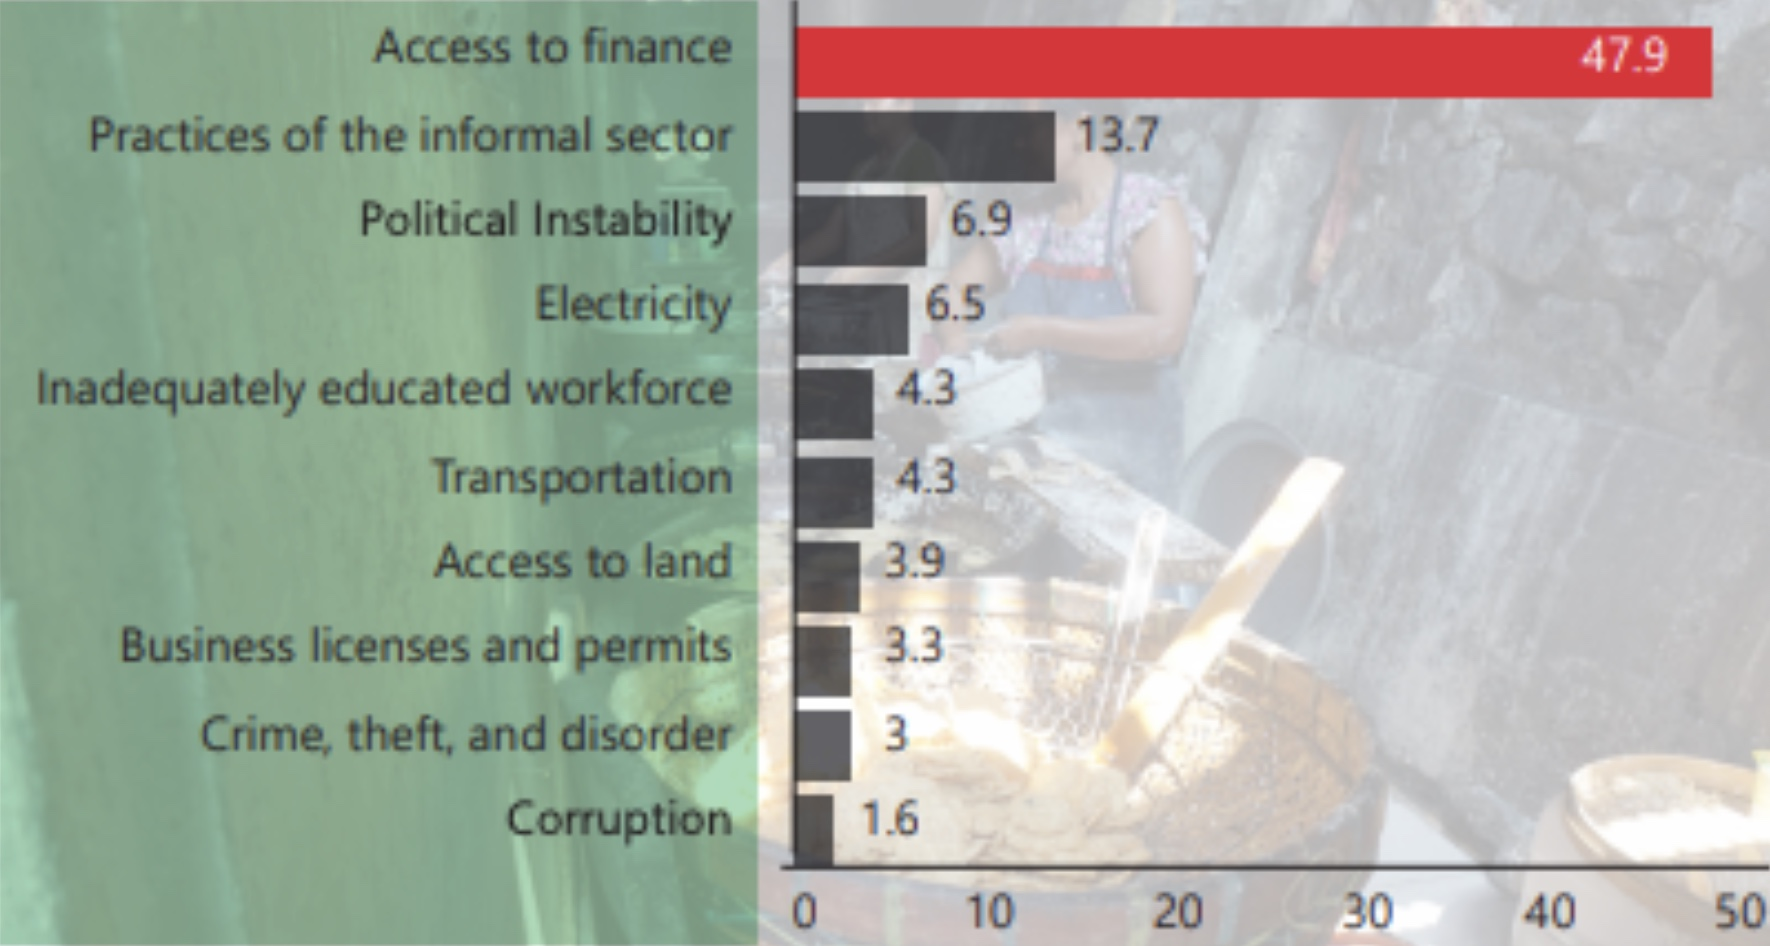 Access to financing options remains the top challenge for Indonesian SMEs (Image Credit: IFC)